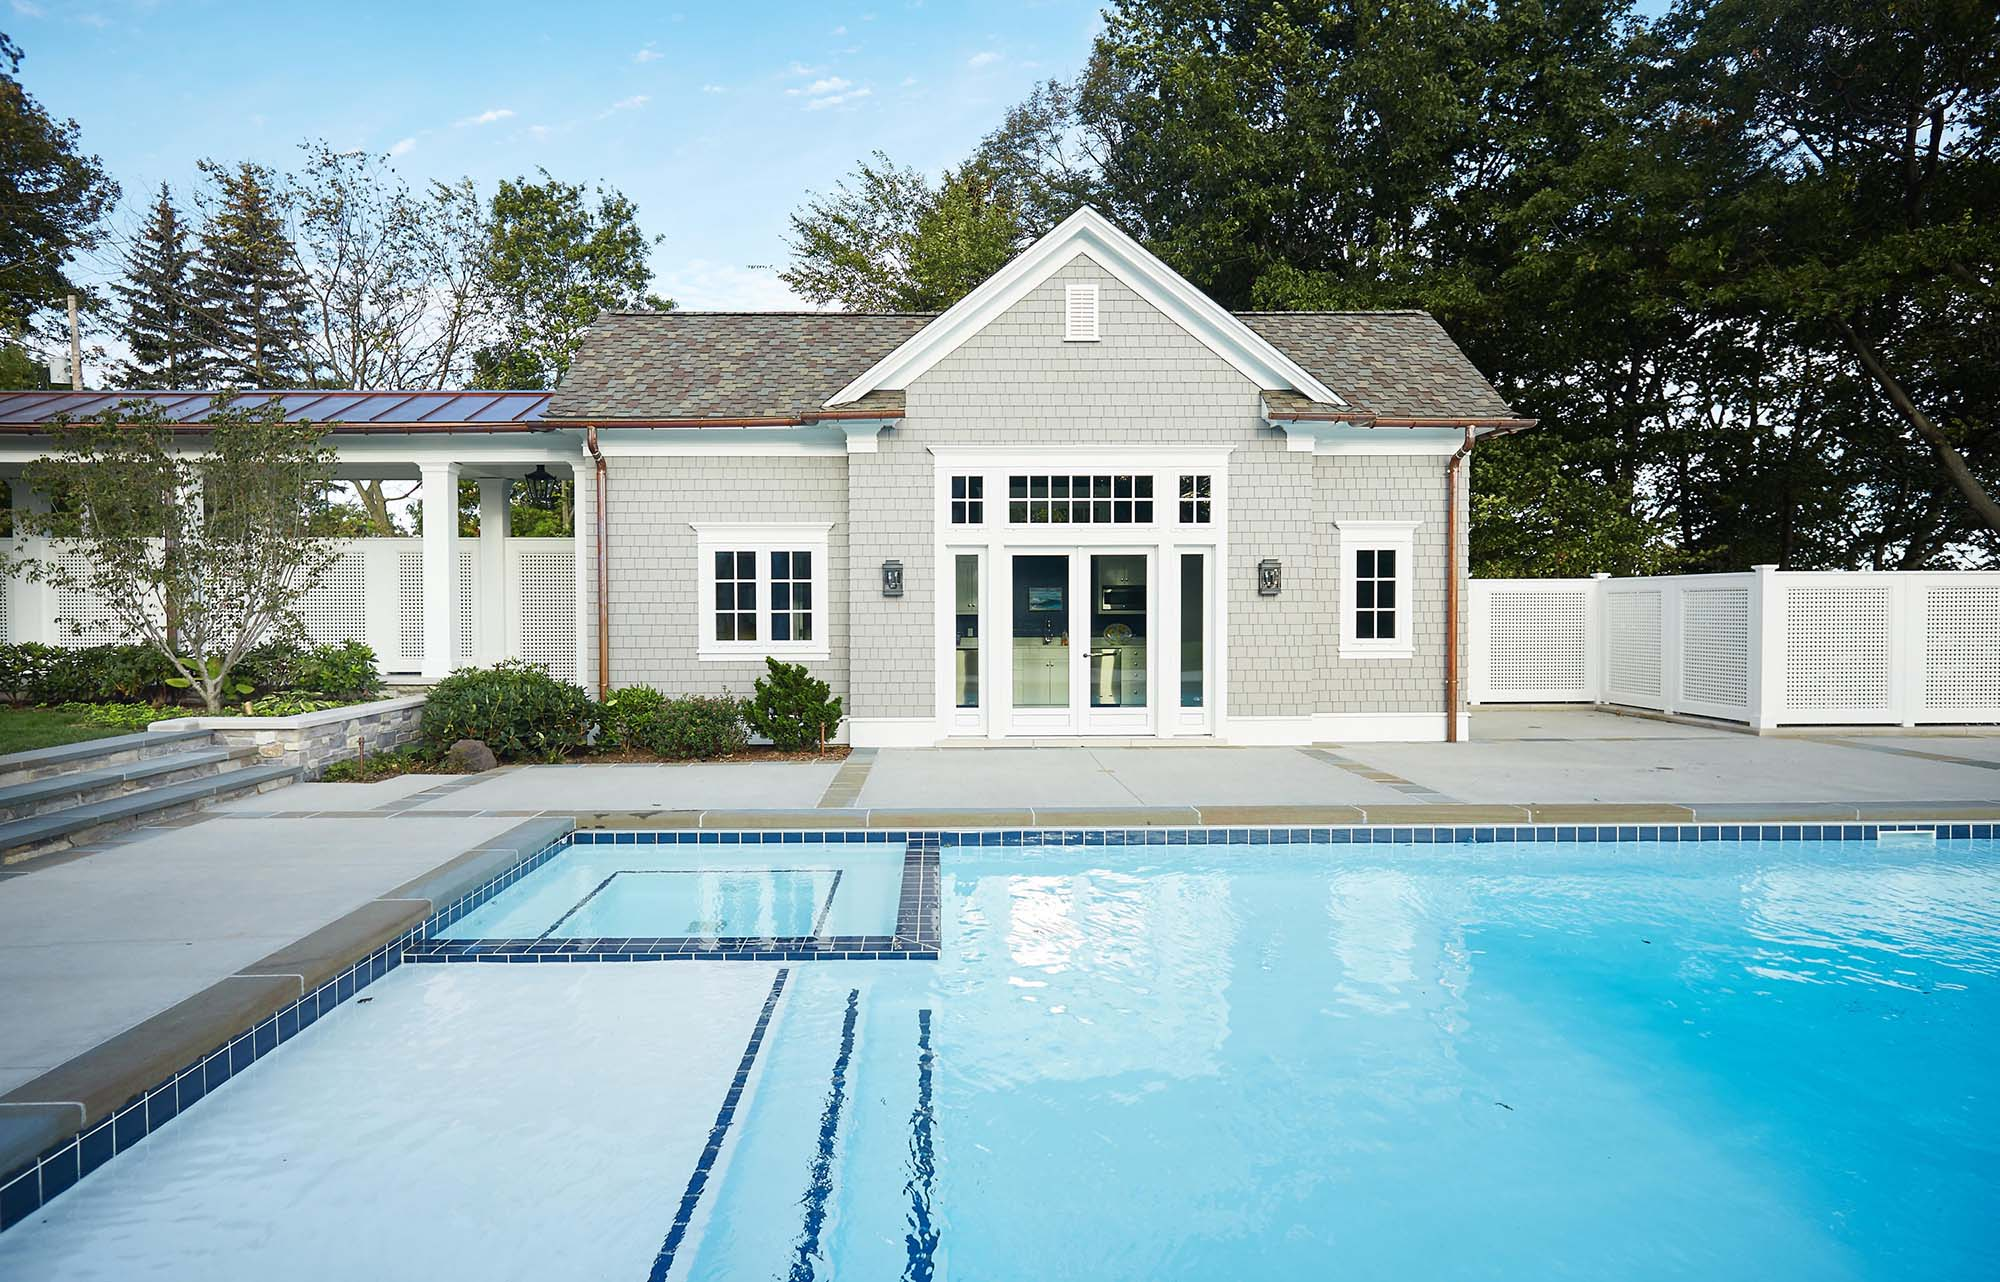 custom home builder NJ pool house with covered walkway and in ground pool